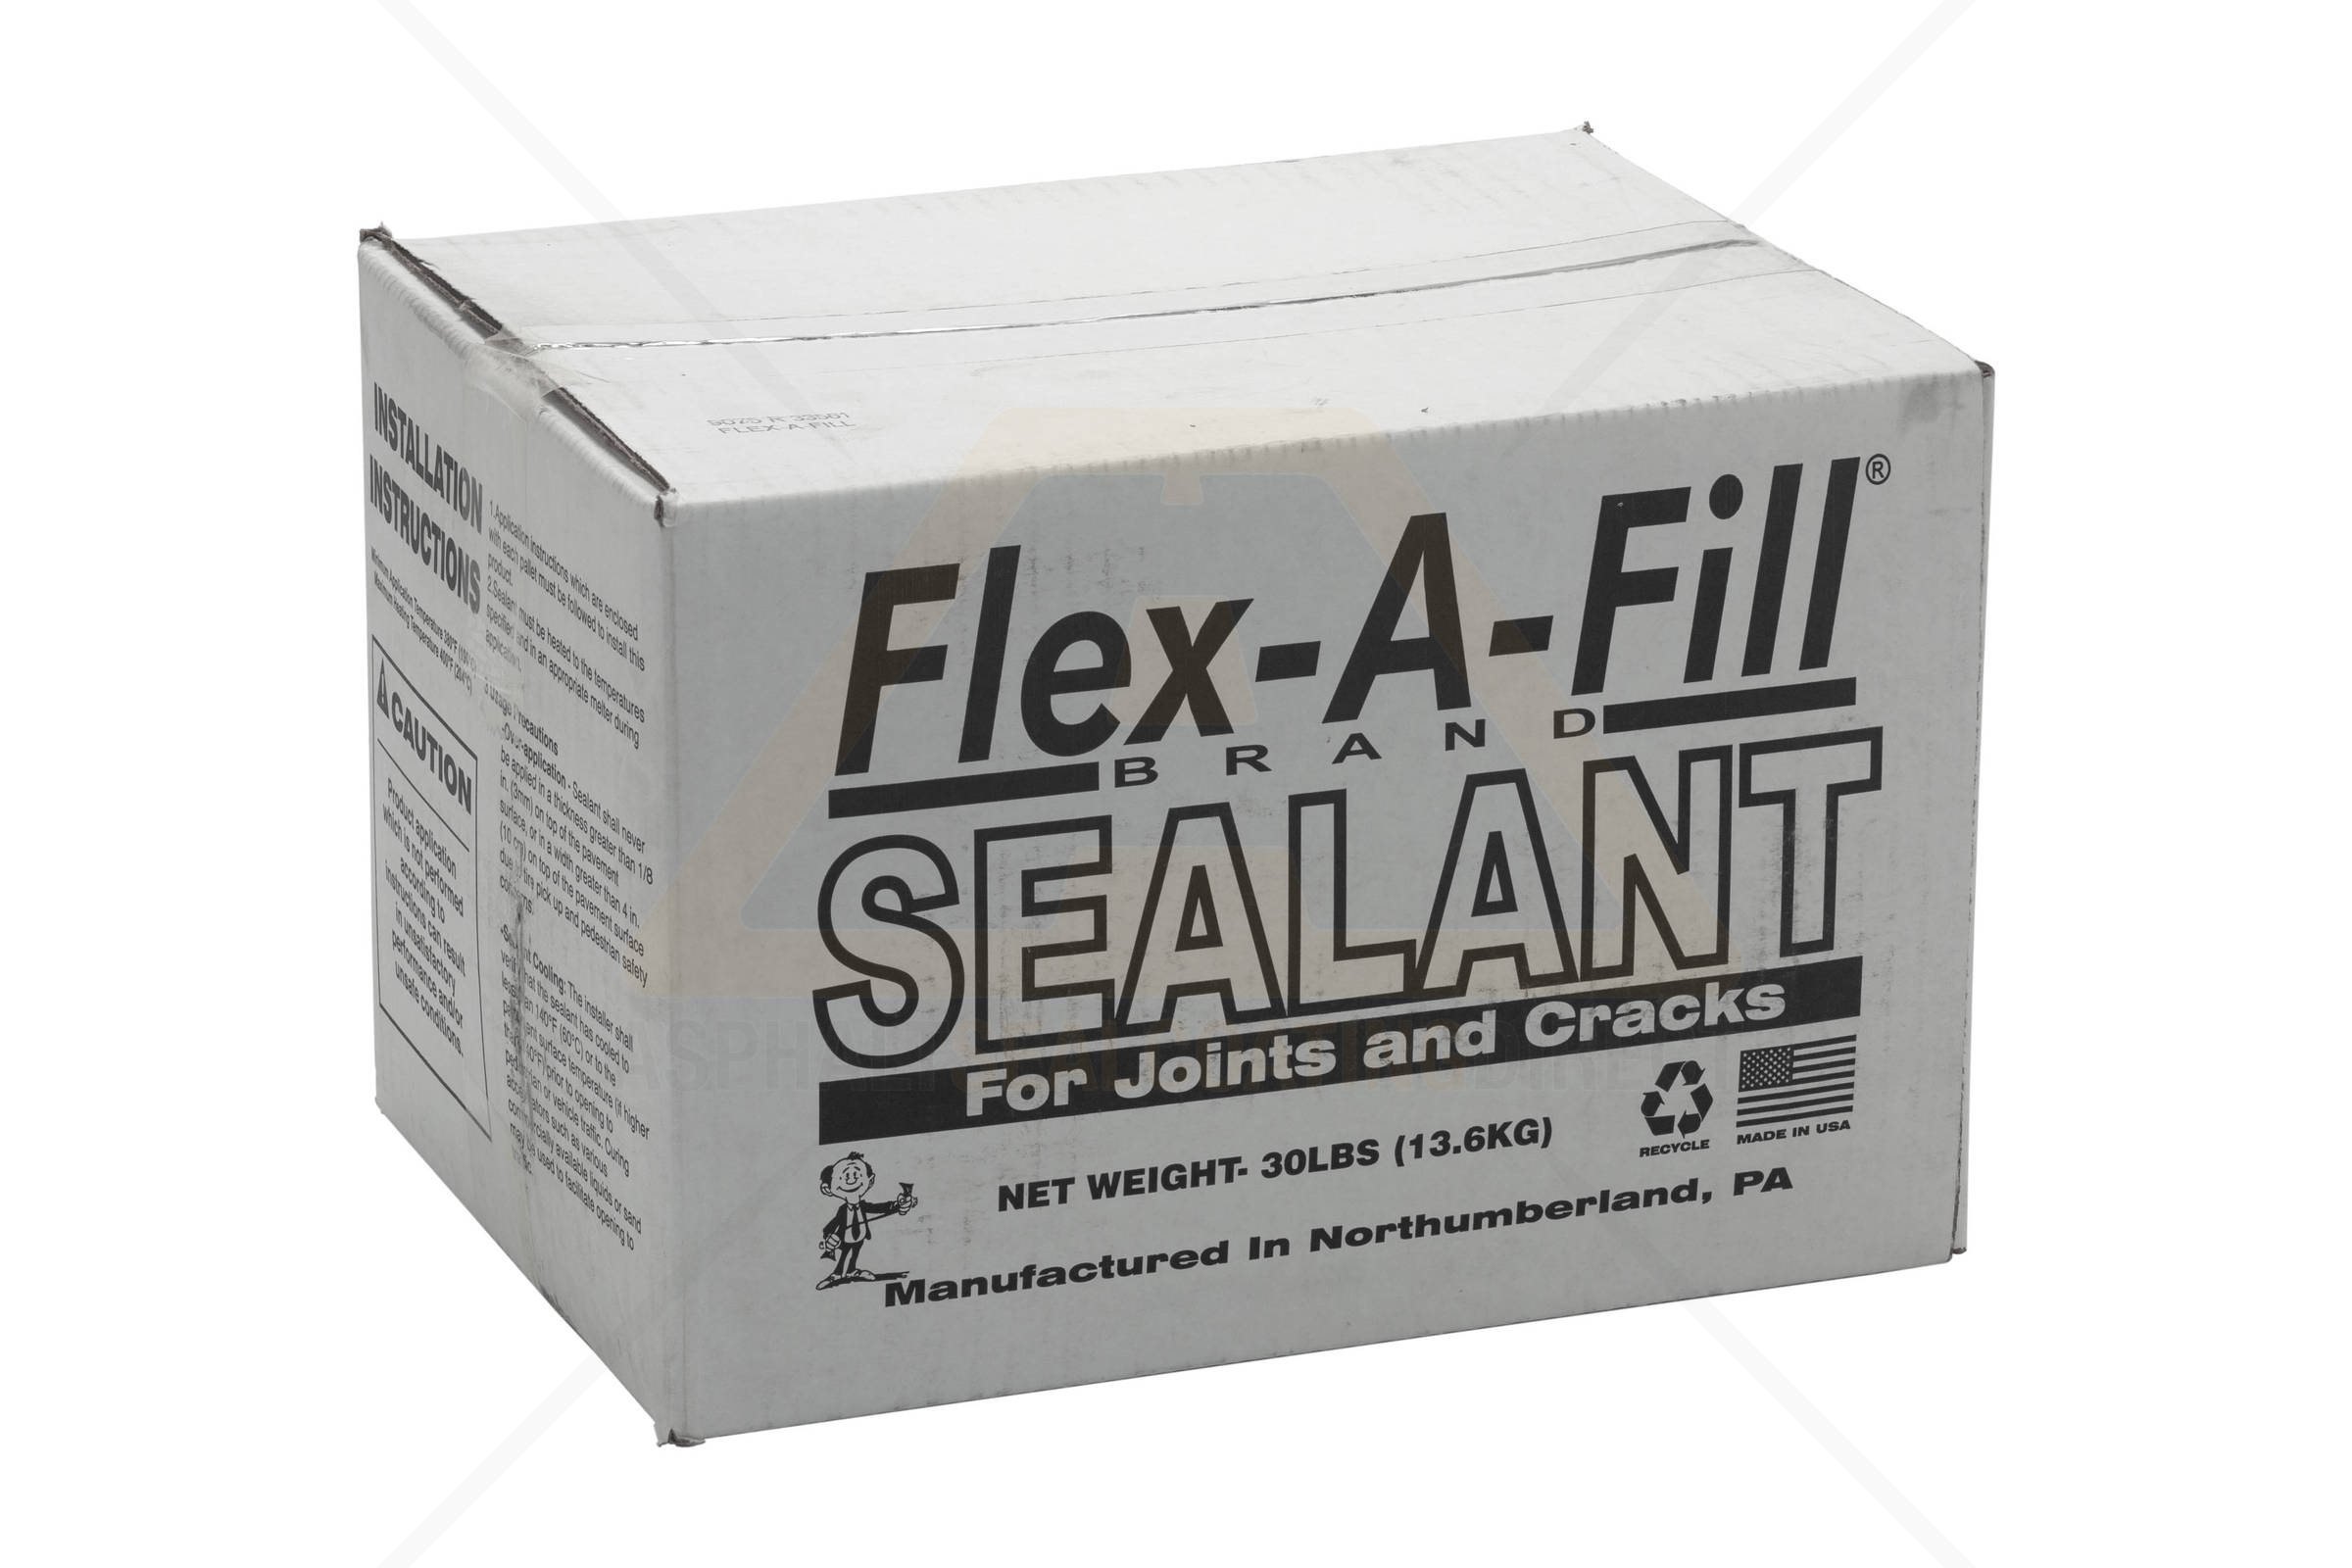 Flex-A-Fill Asphalt Crack Sealant